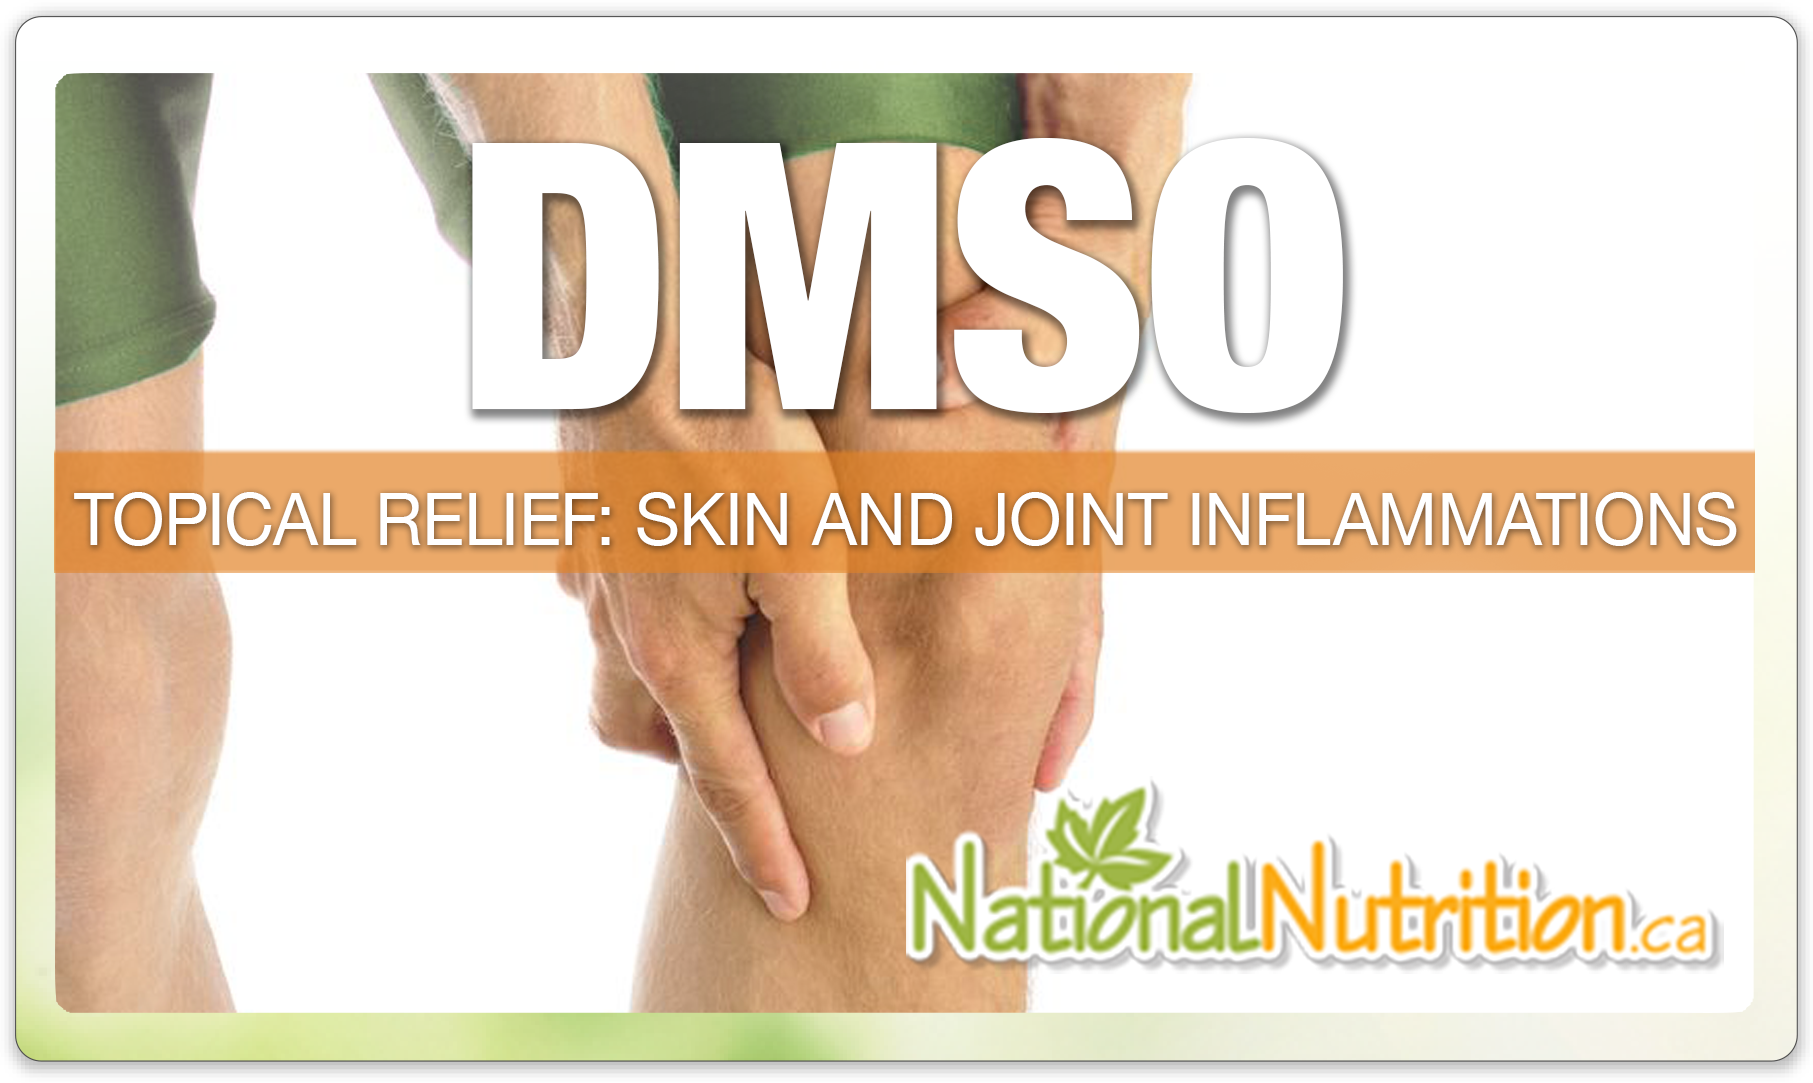 Dmso - National Nutrition Articles